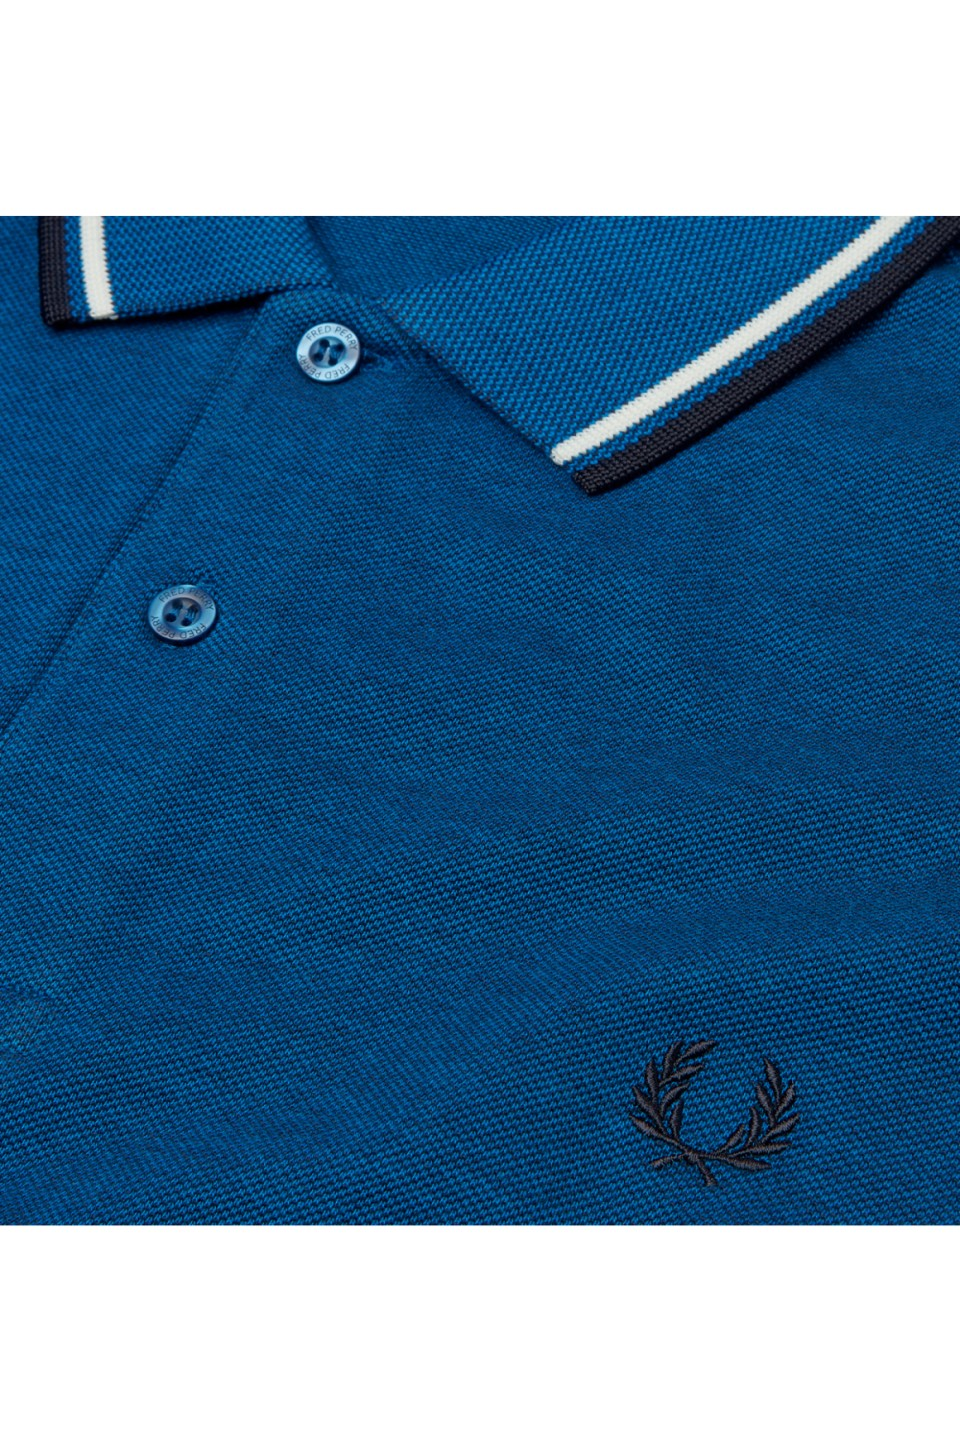 70895789b Fred Perry Polo Carbon Oxford / White / Navy – DeadRockers